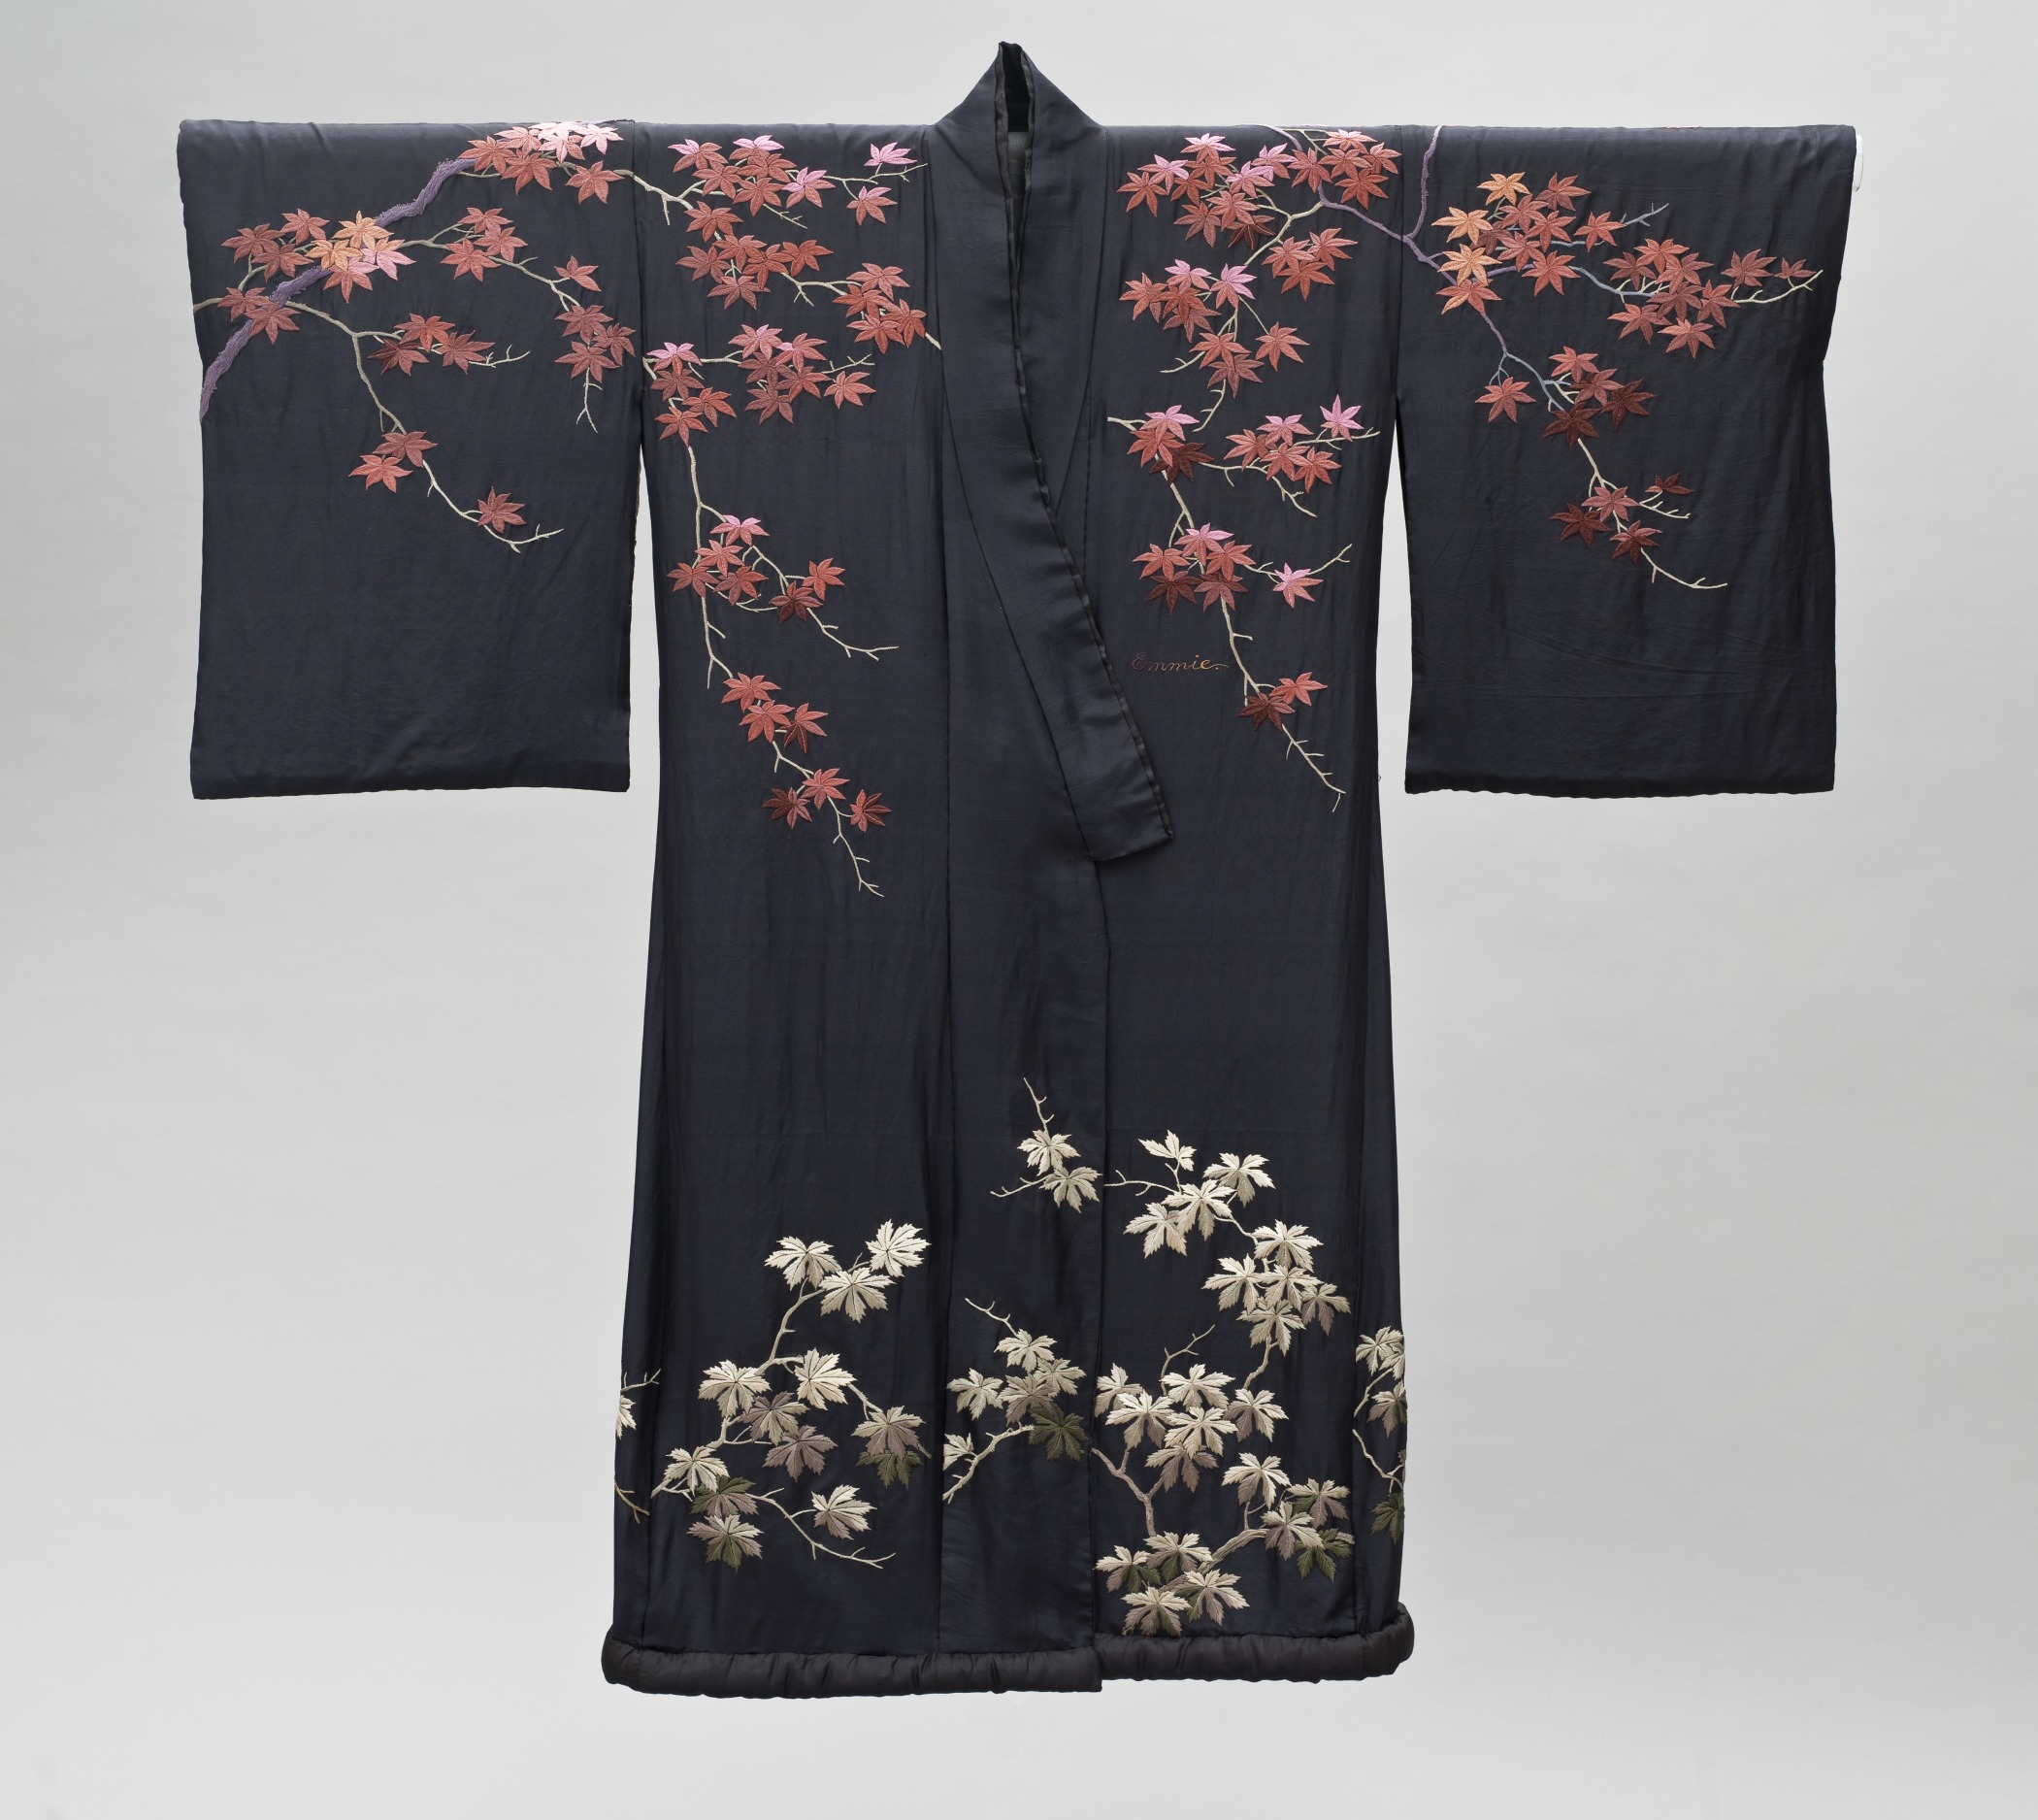 Shop our carefully curated collection of women's kimonos! FREE shipping on orders $60 or more.